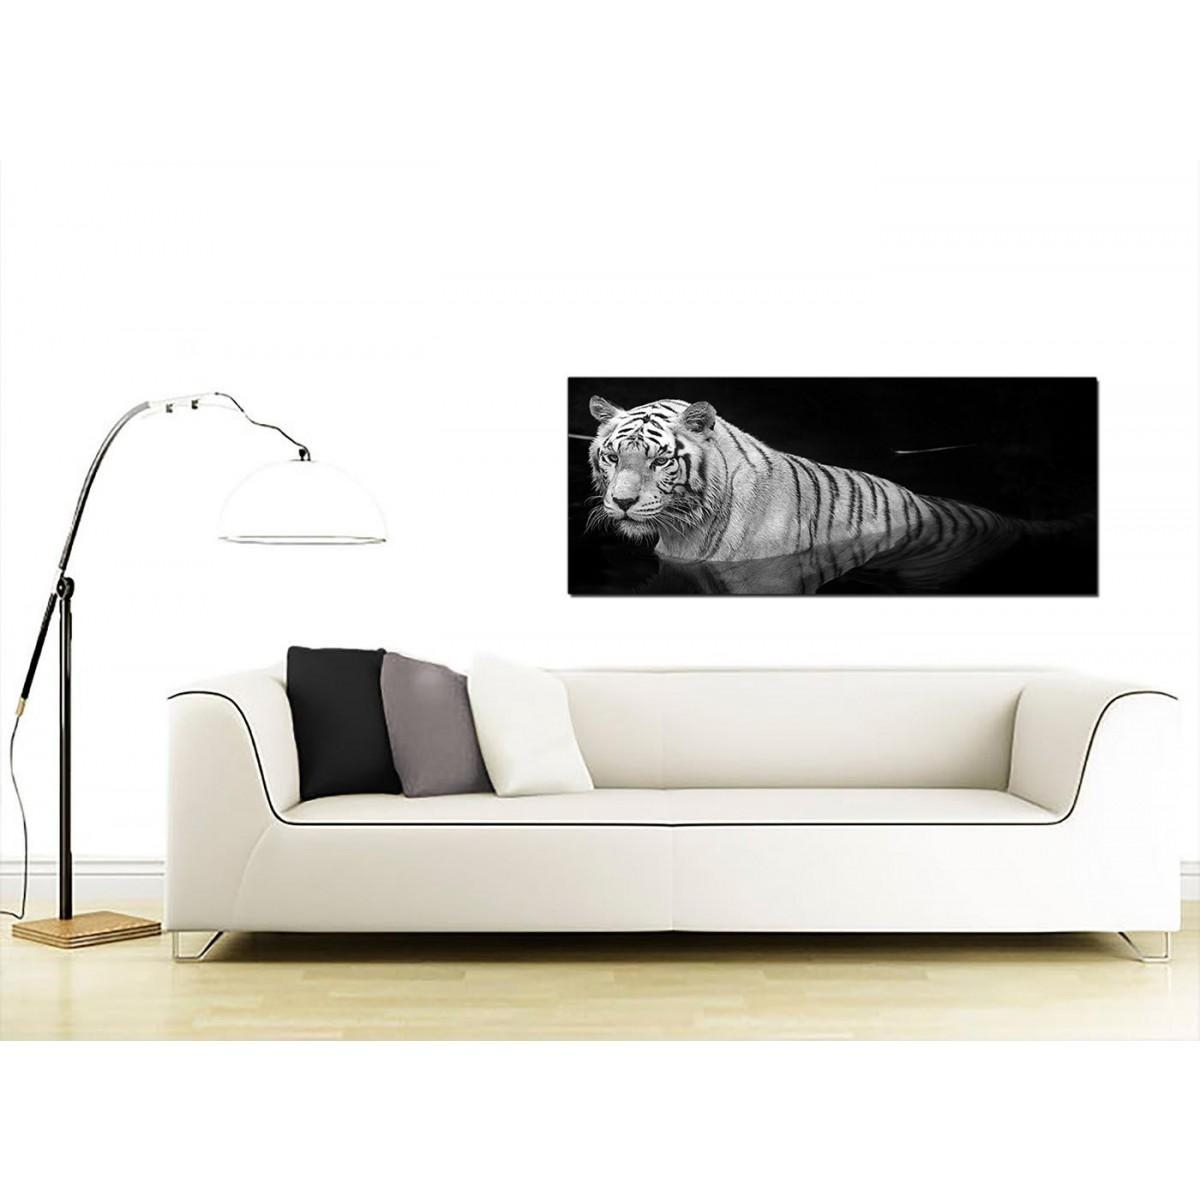 Large Black And White Canvas Wall Art Of A Tiger Throughout Large Black And White Wall Art (View 11 of 20)